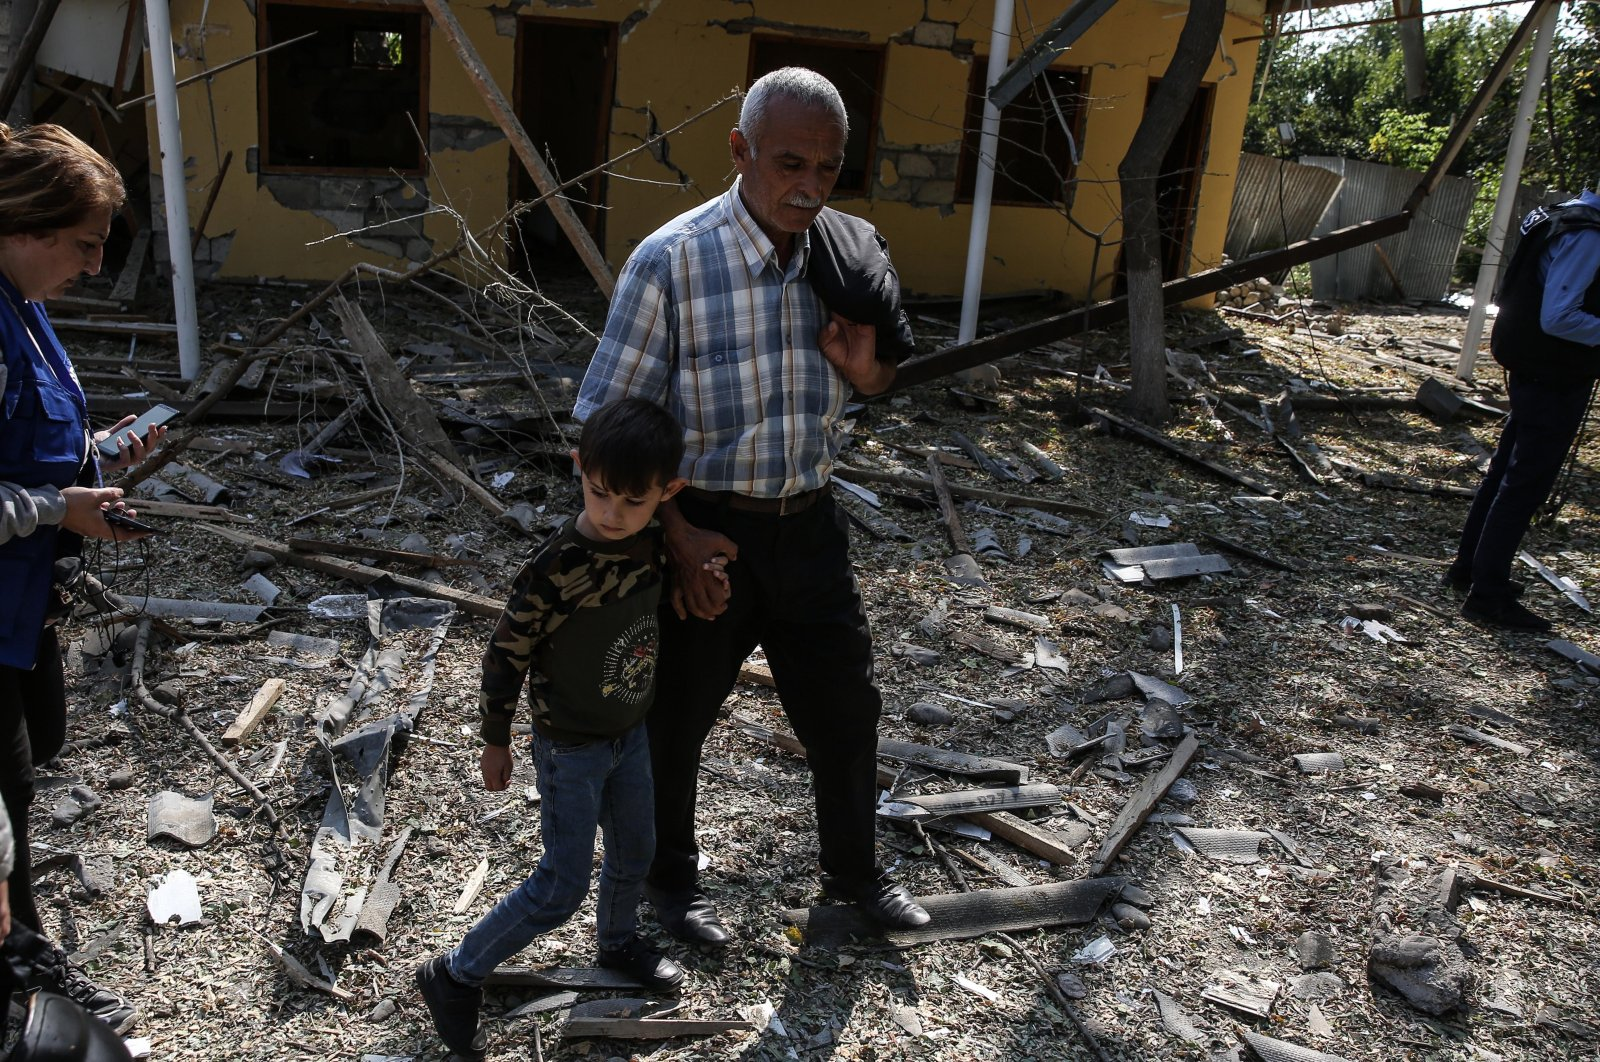 A man and a child walk in front of a home destroyed in Armenian shelling in the Azerbaijani city of Barda on Oct. 12, 2020. (AA File Photo)